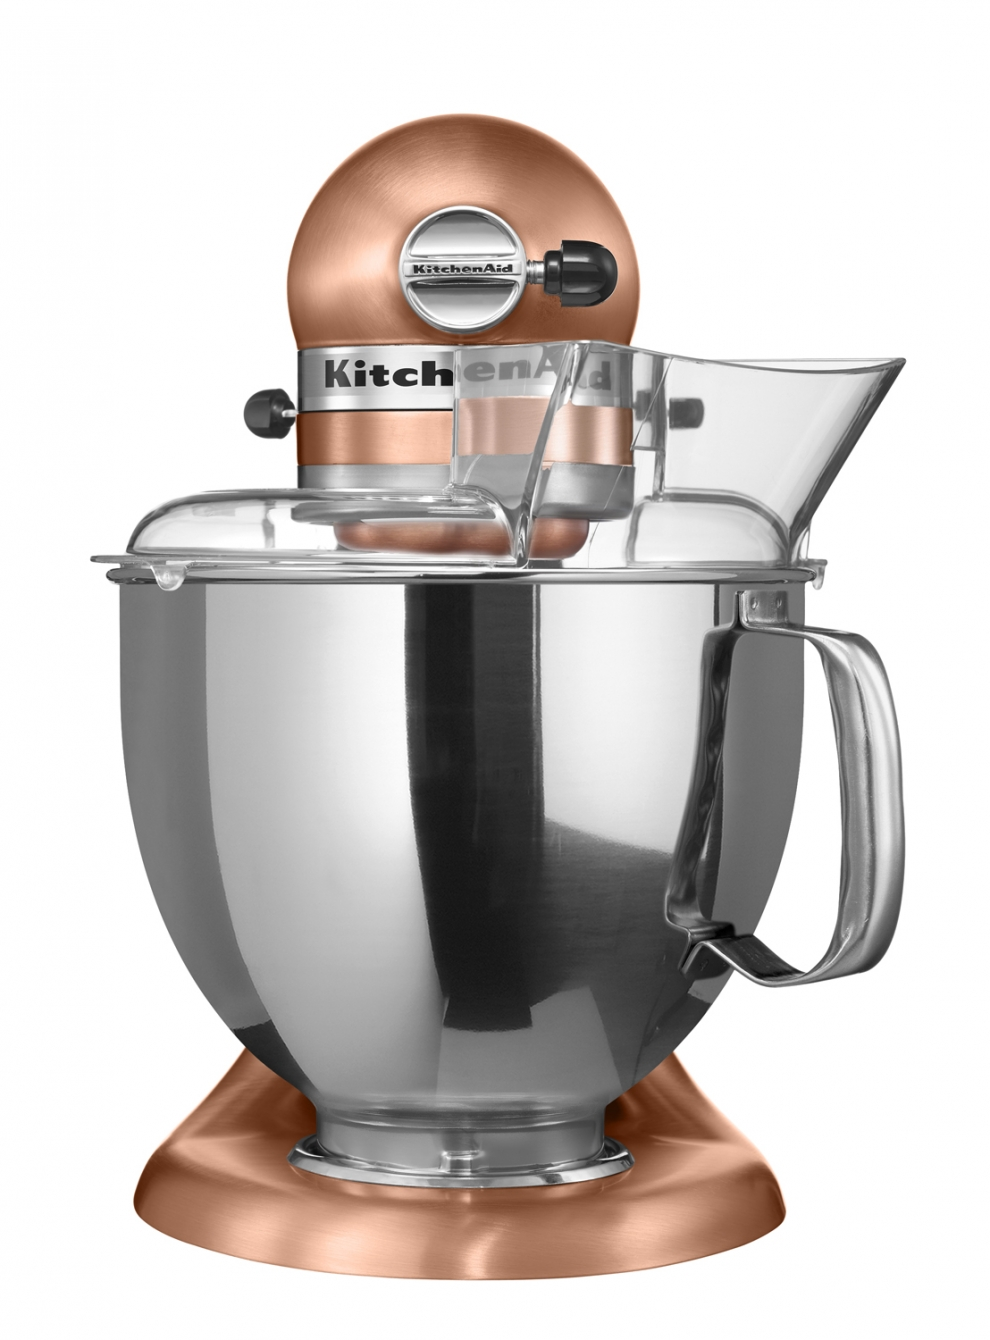 Kitchenaid robot kitchenaid artisan cuivre 5ksm150psecp - Robot de cuisine kitchenaid ...